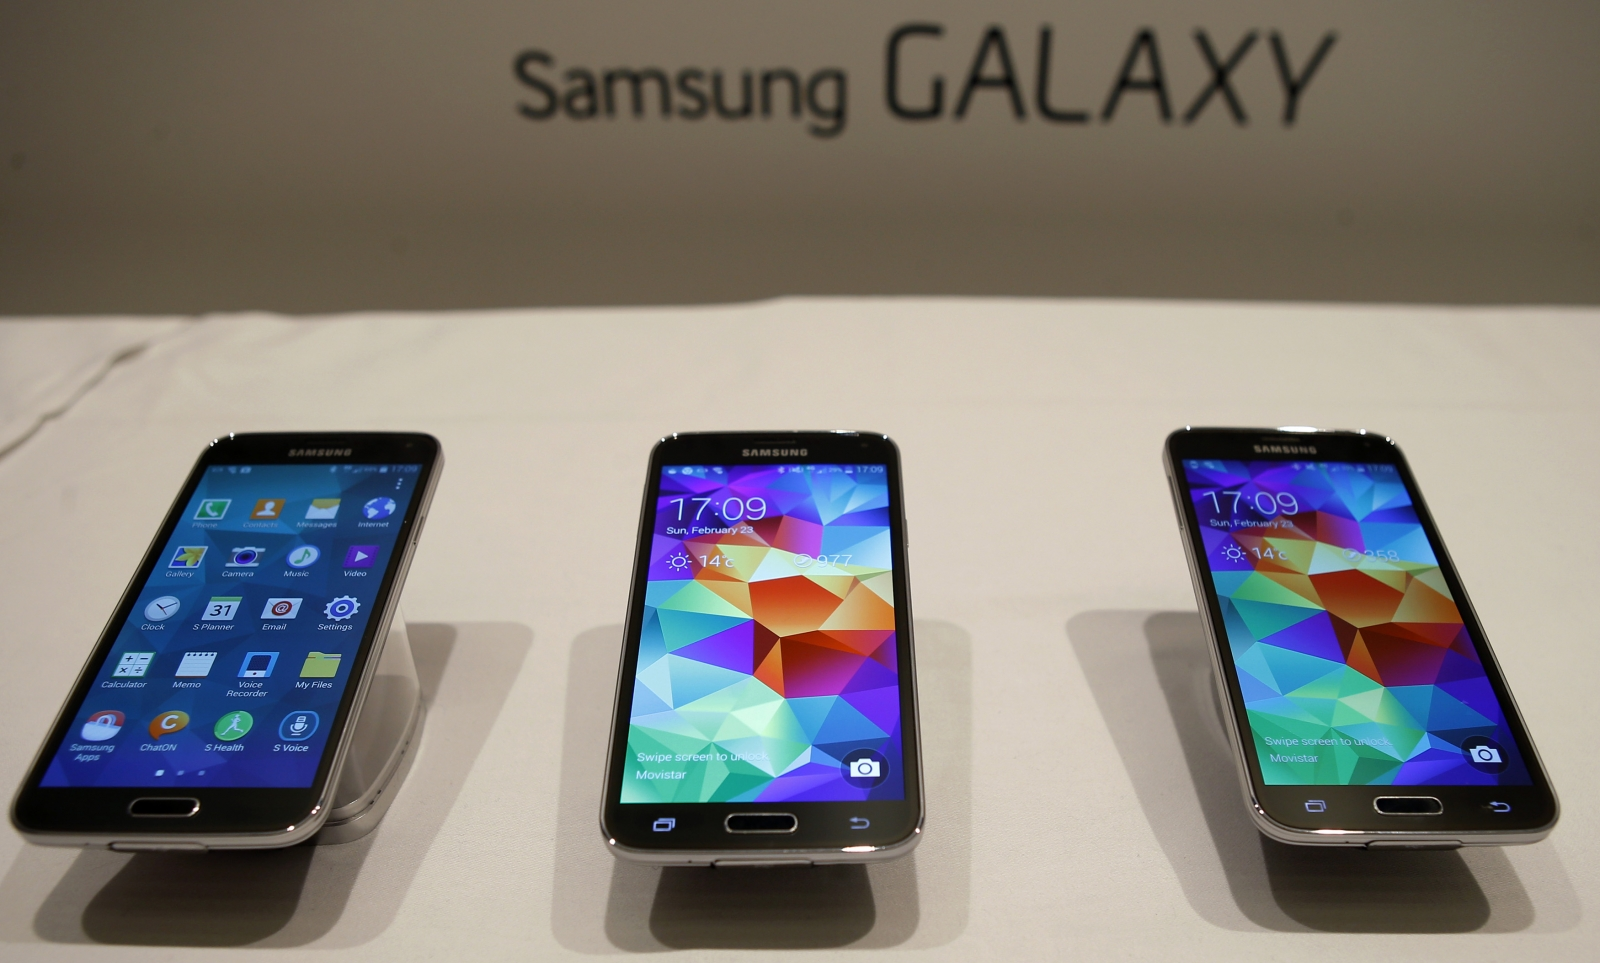 Samsung Loses its Spark as Galaxy S5 Sales Fall 40% Short of Bullish on screen shot samsung s5, manual samsung s5, features samsung s5, accessories samsung s5, cover samsung s5,